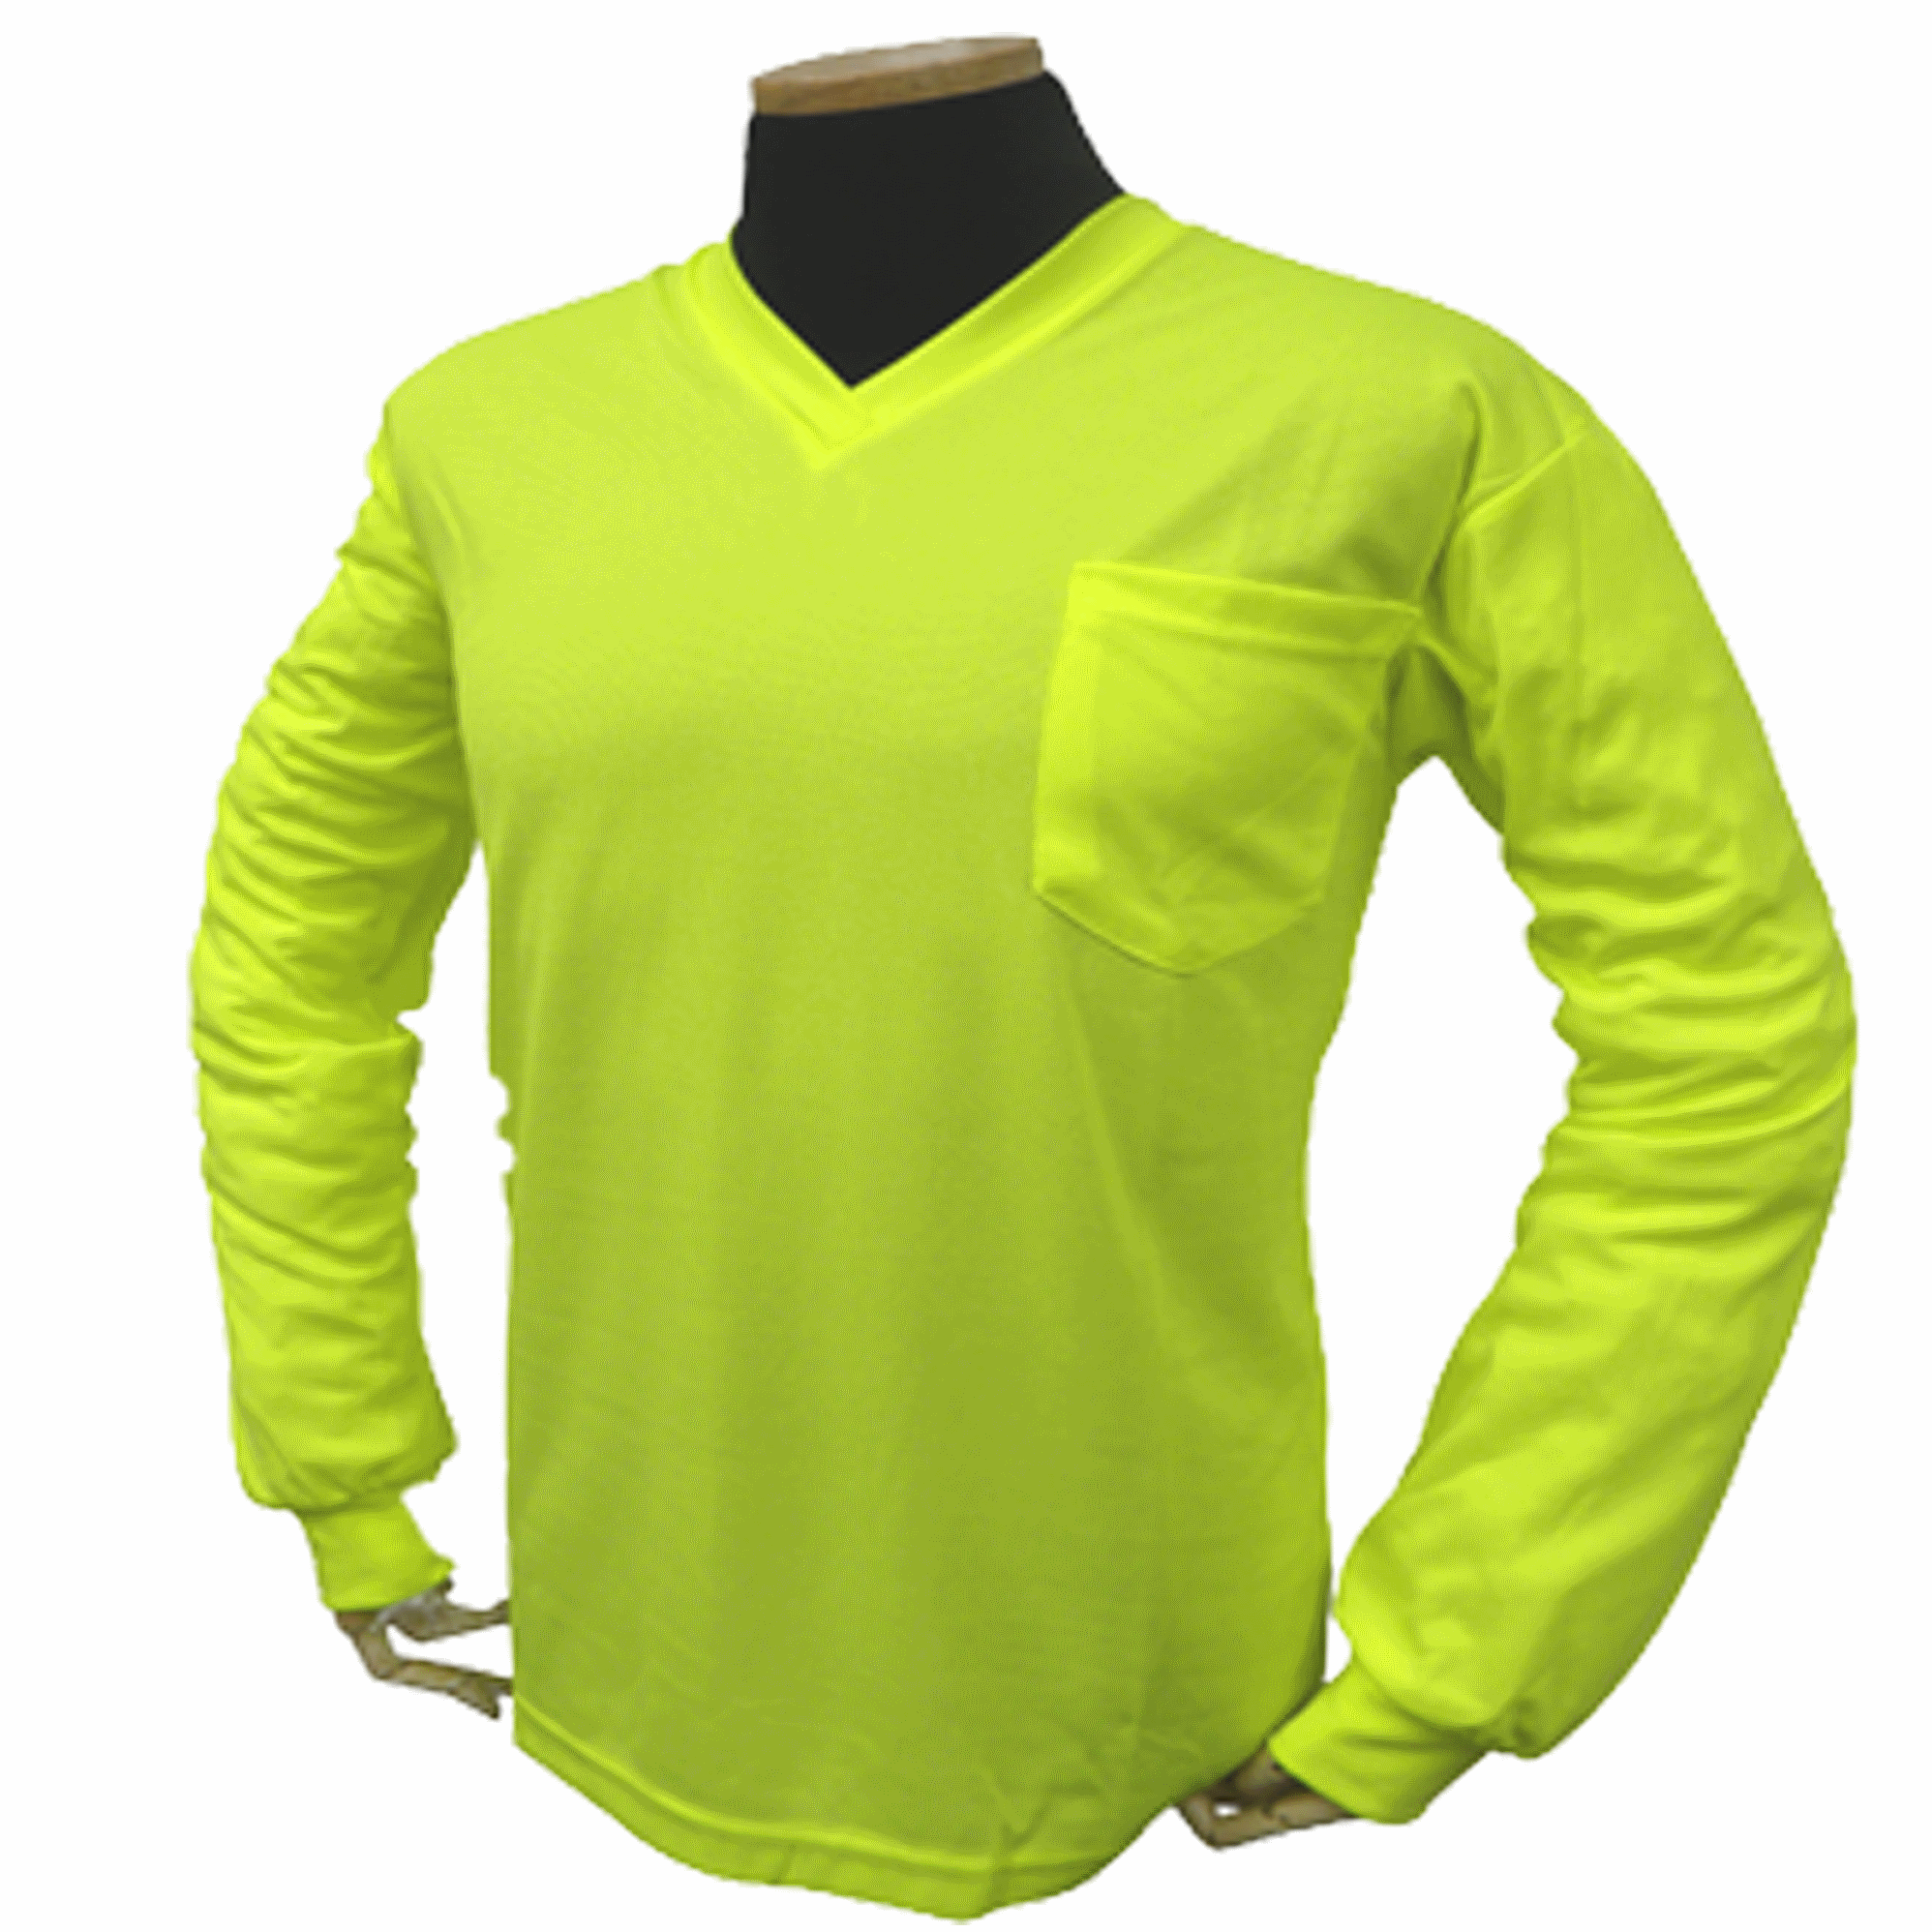 Long Sleeve Lime without Reflective Stripe Birdseye V Neck